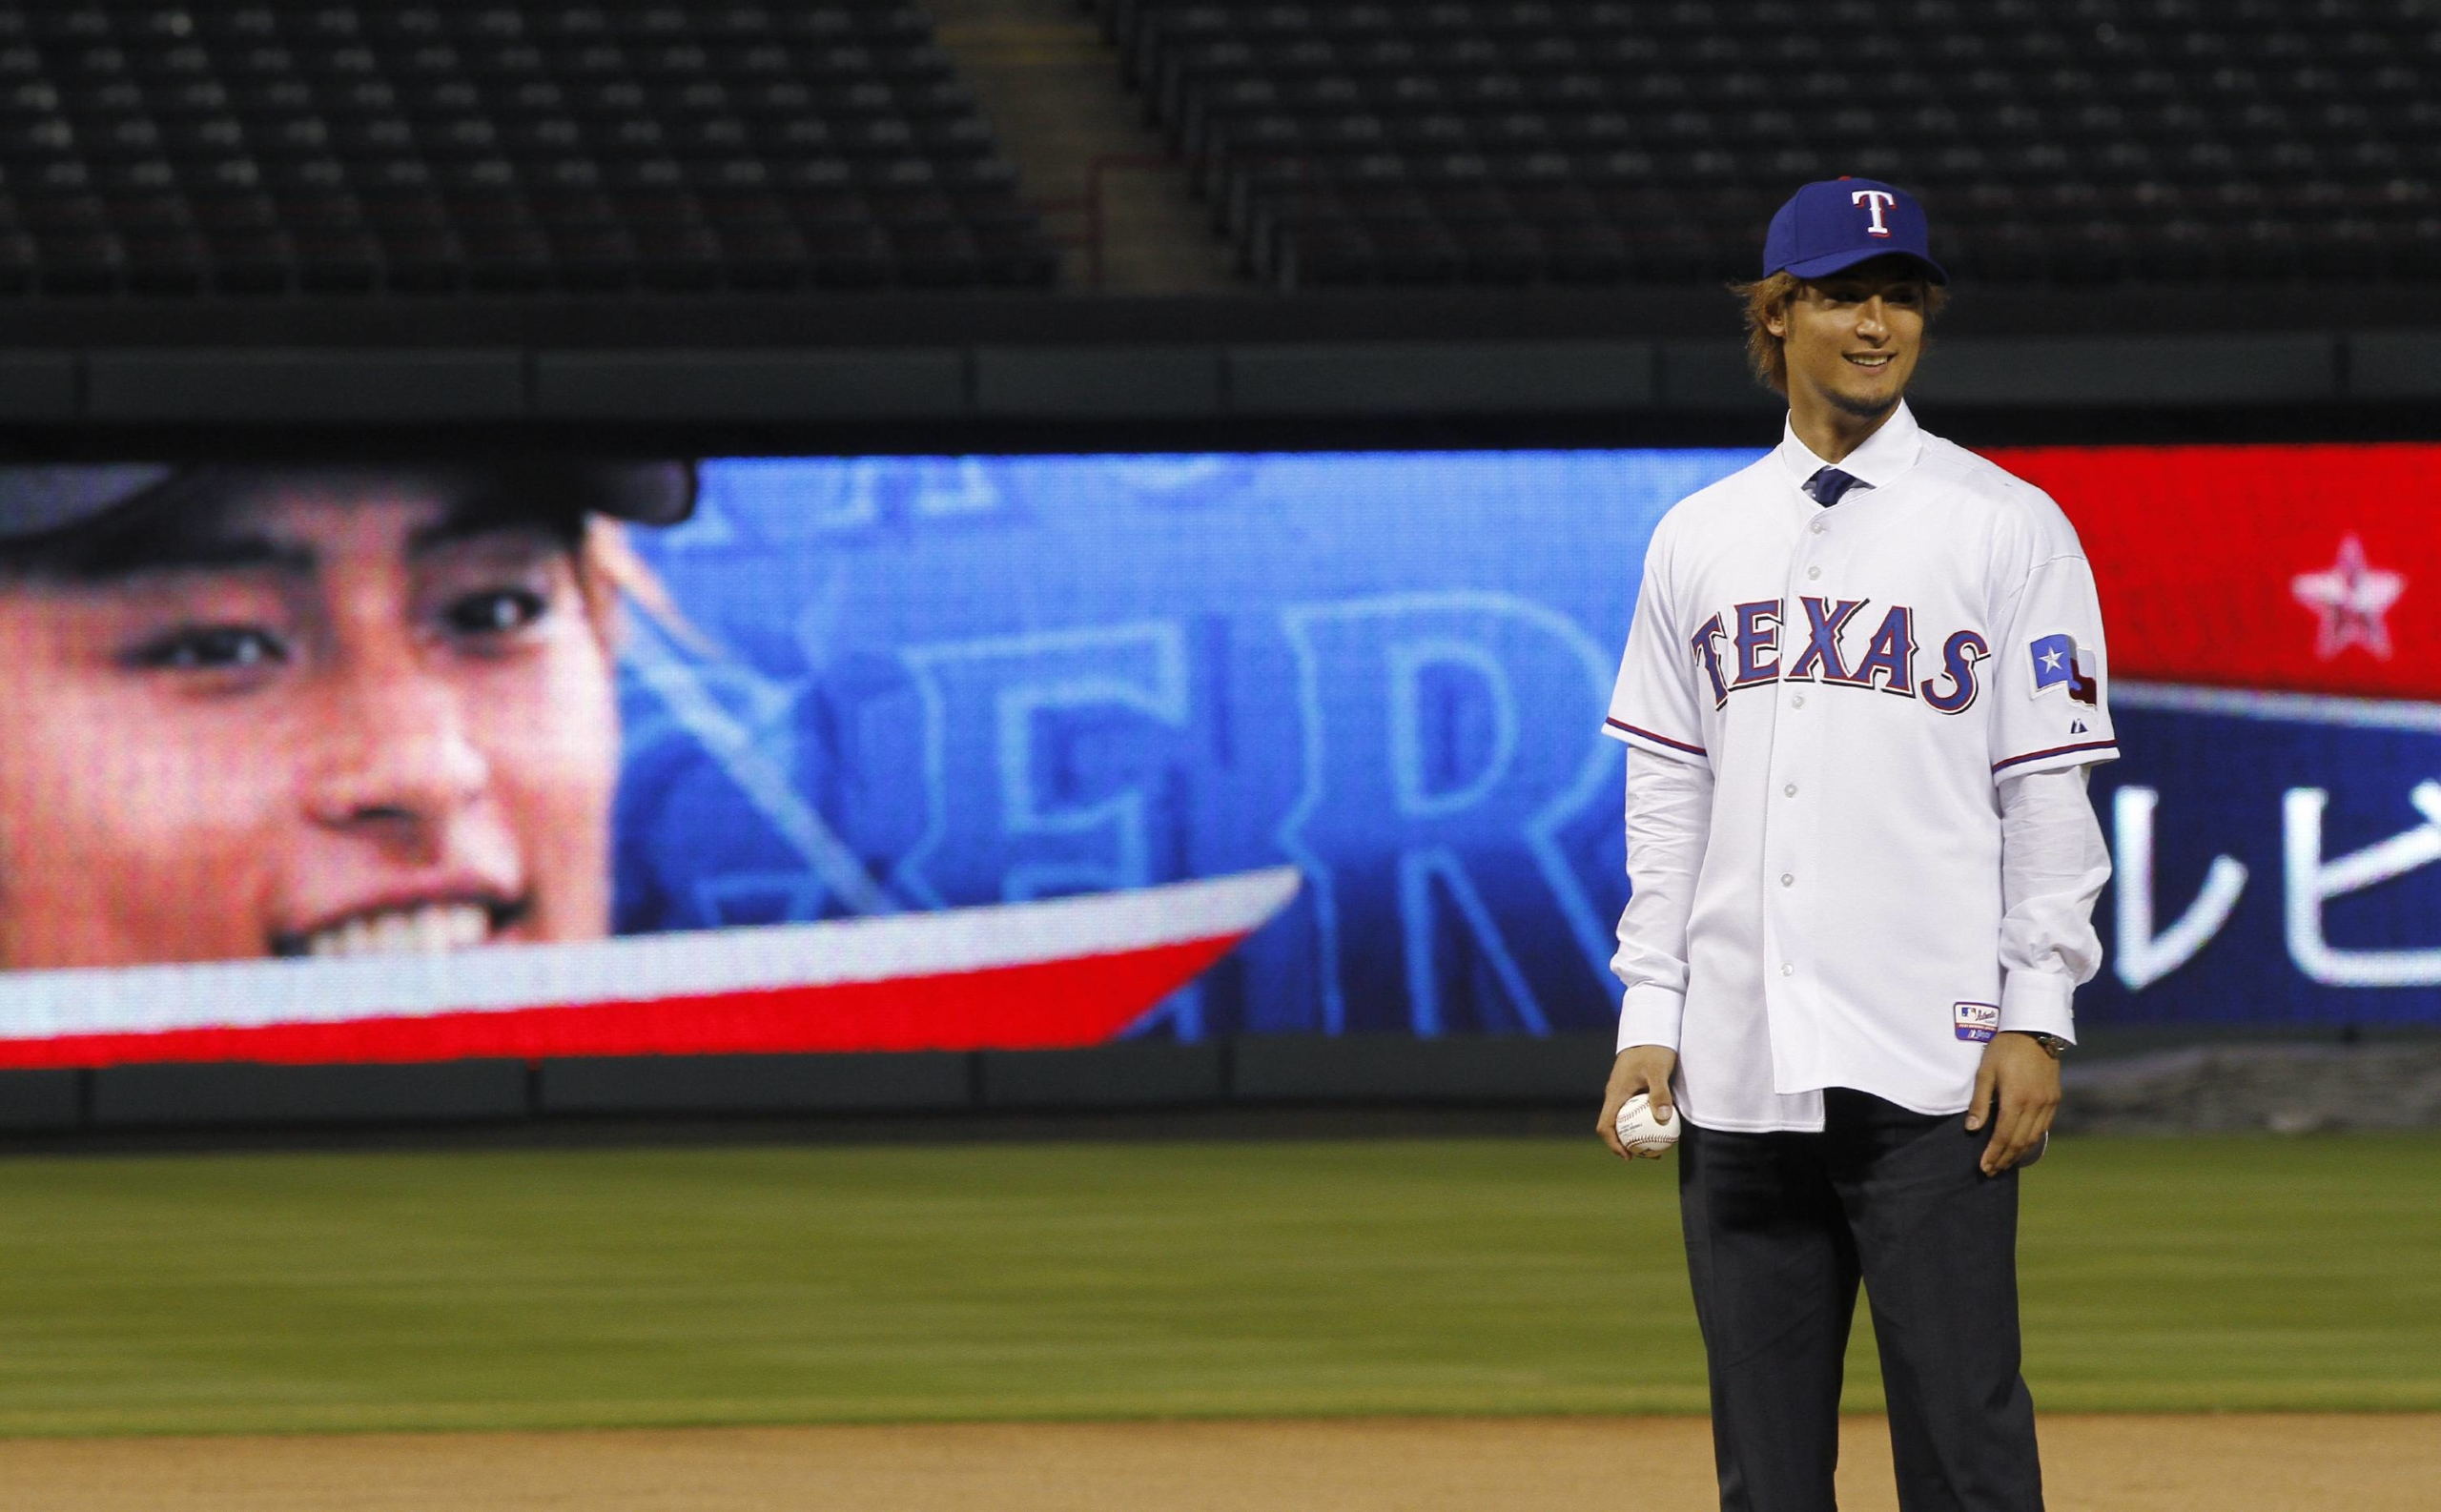 Yu Darvish takes the mound during his unveiling by the Rangers on Jan. 20, 2012, in Arlington, Texas. | REUTERS